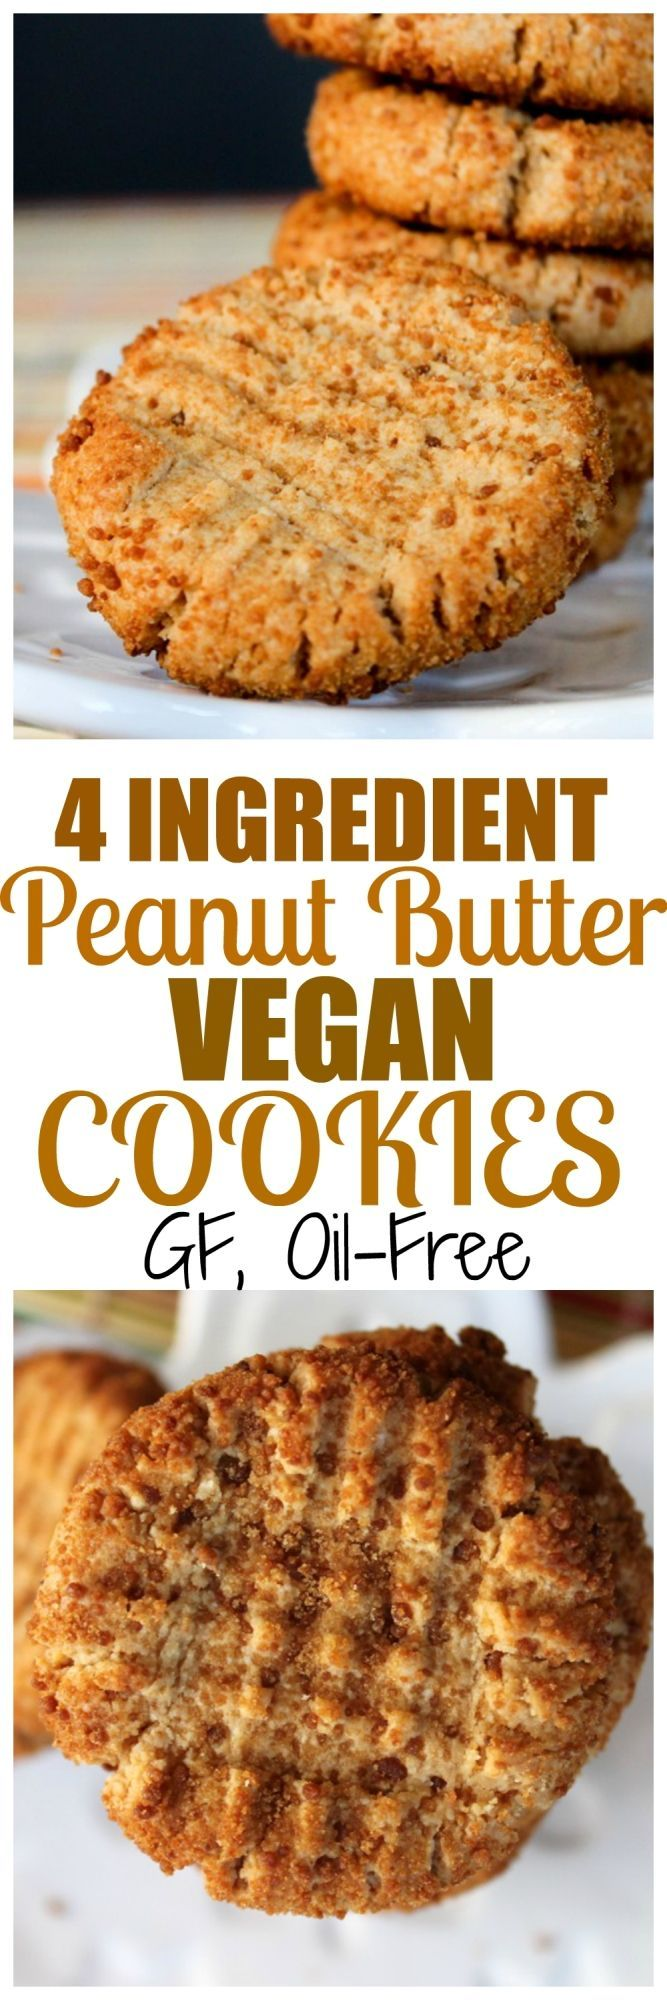 4 Ingredient Vegan Peanut Butter Cookies!